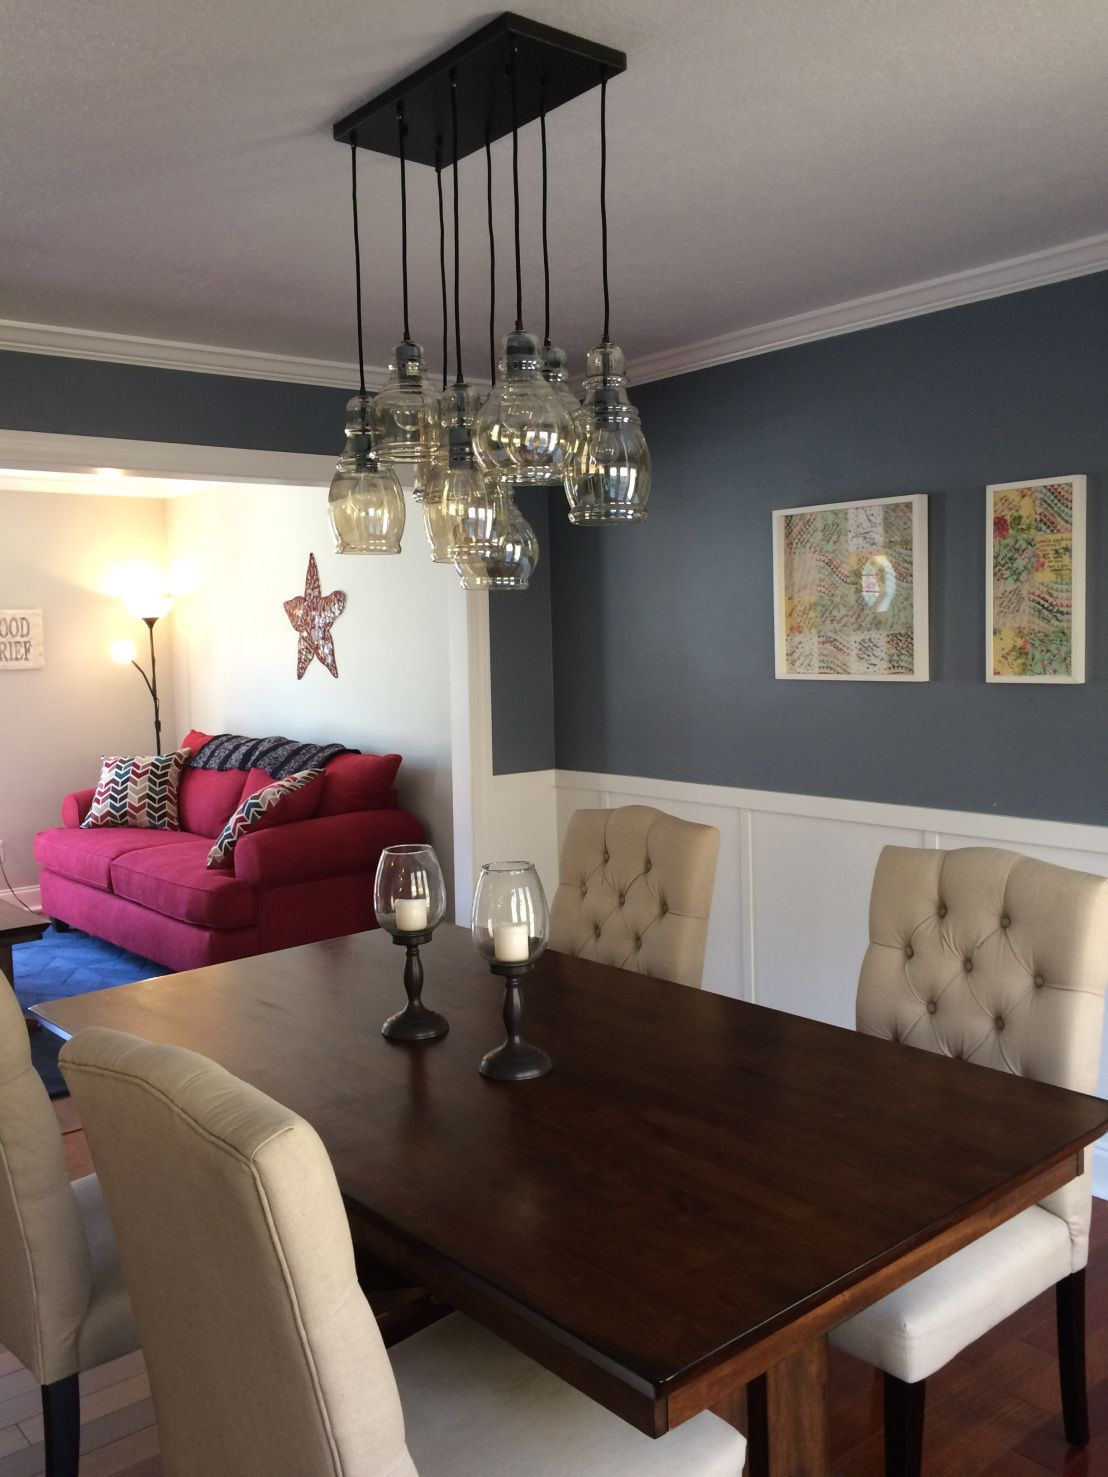 Dining Room Remodel   Board And Batten, Sherwin Williams Storm Cloud In Dining  Room, Sherwin Williams Aloof Gray In Living Room, Mariana 8 Light Pendant  ...